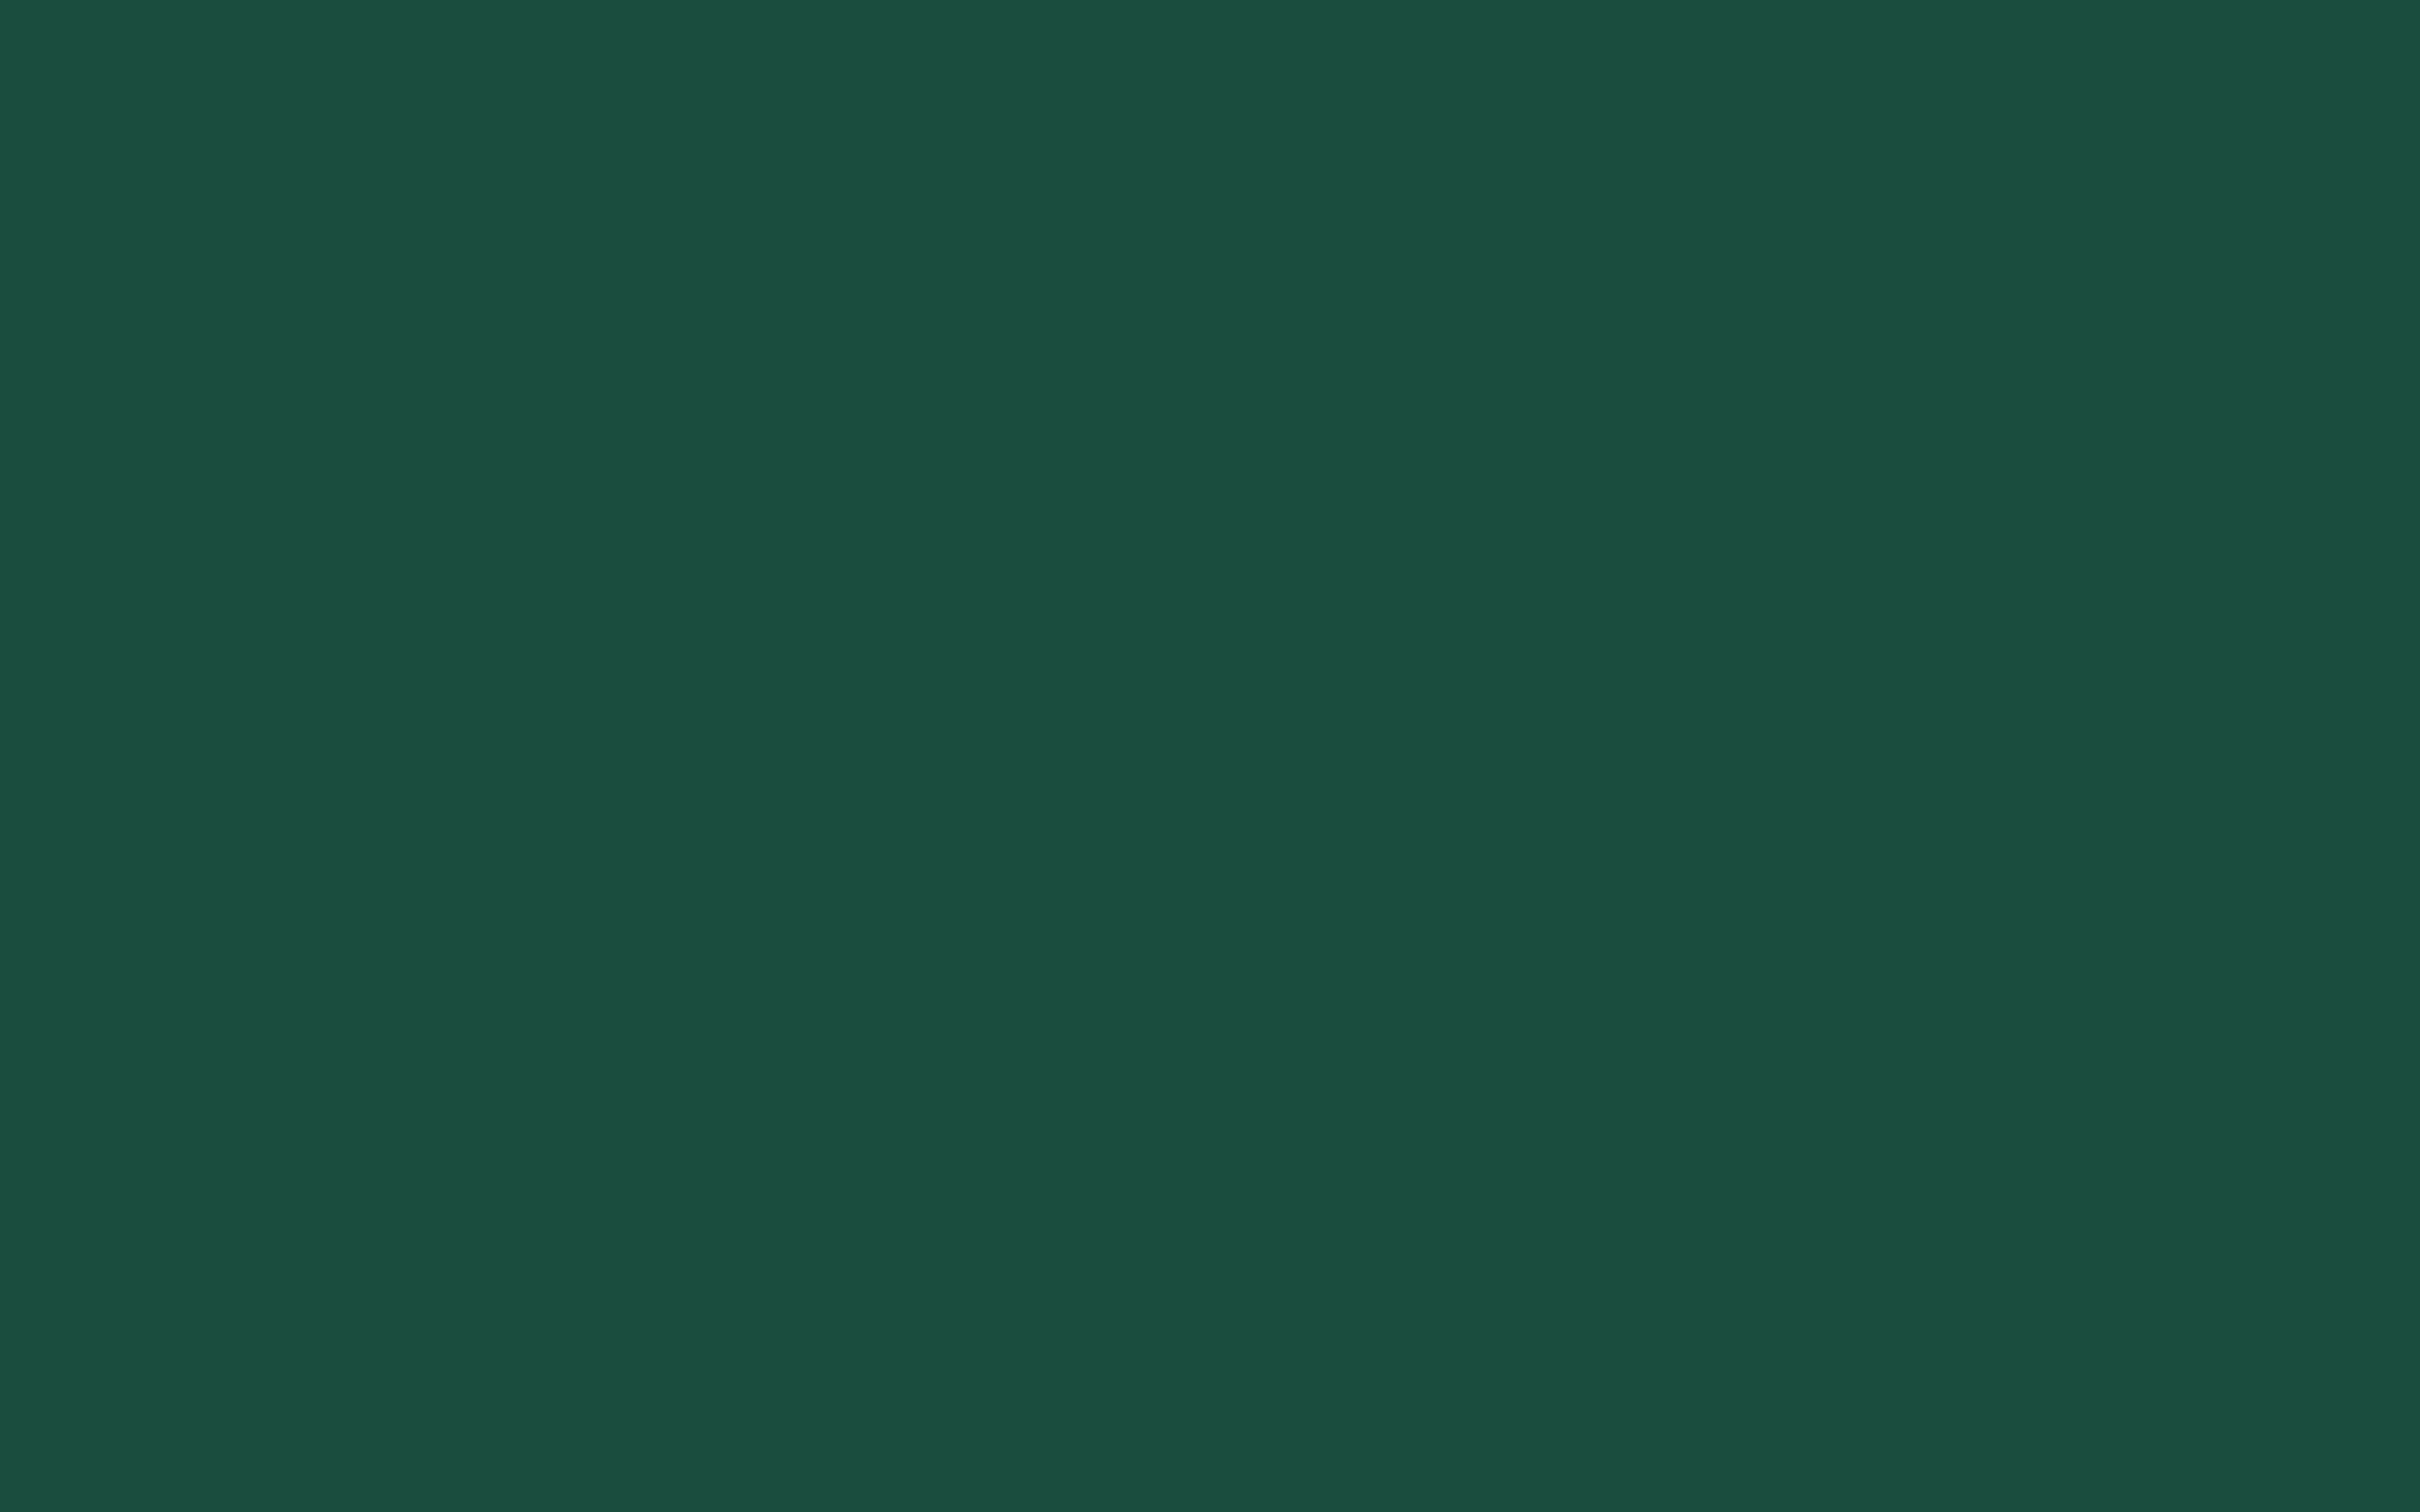 2560x1600 English Green Solid Color Background